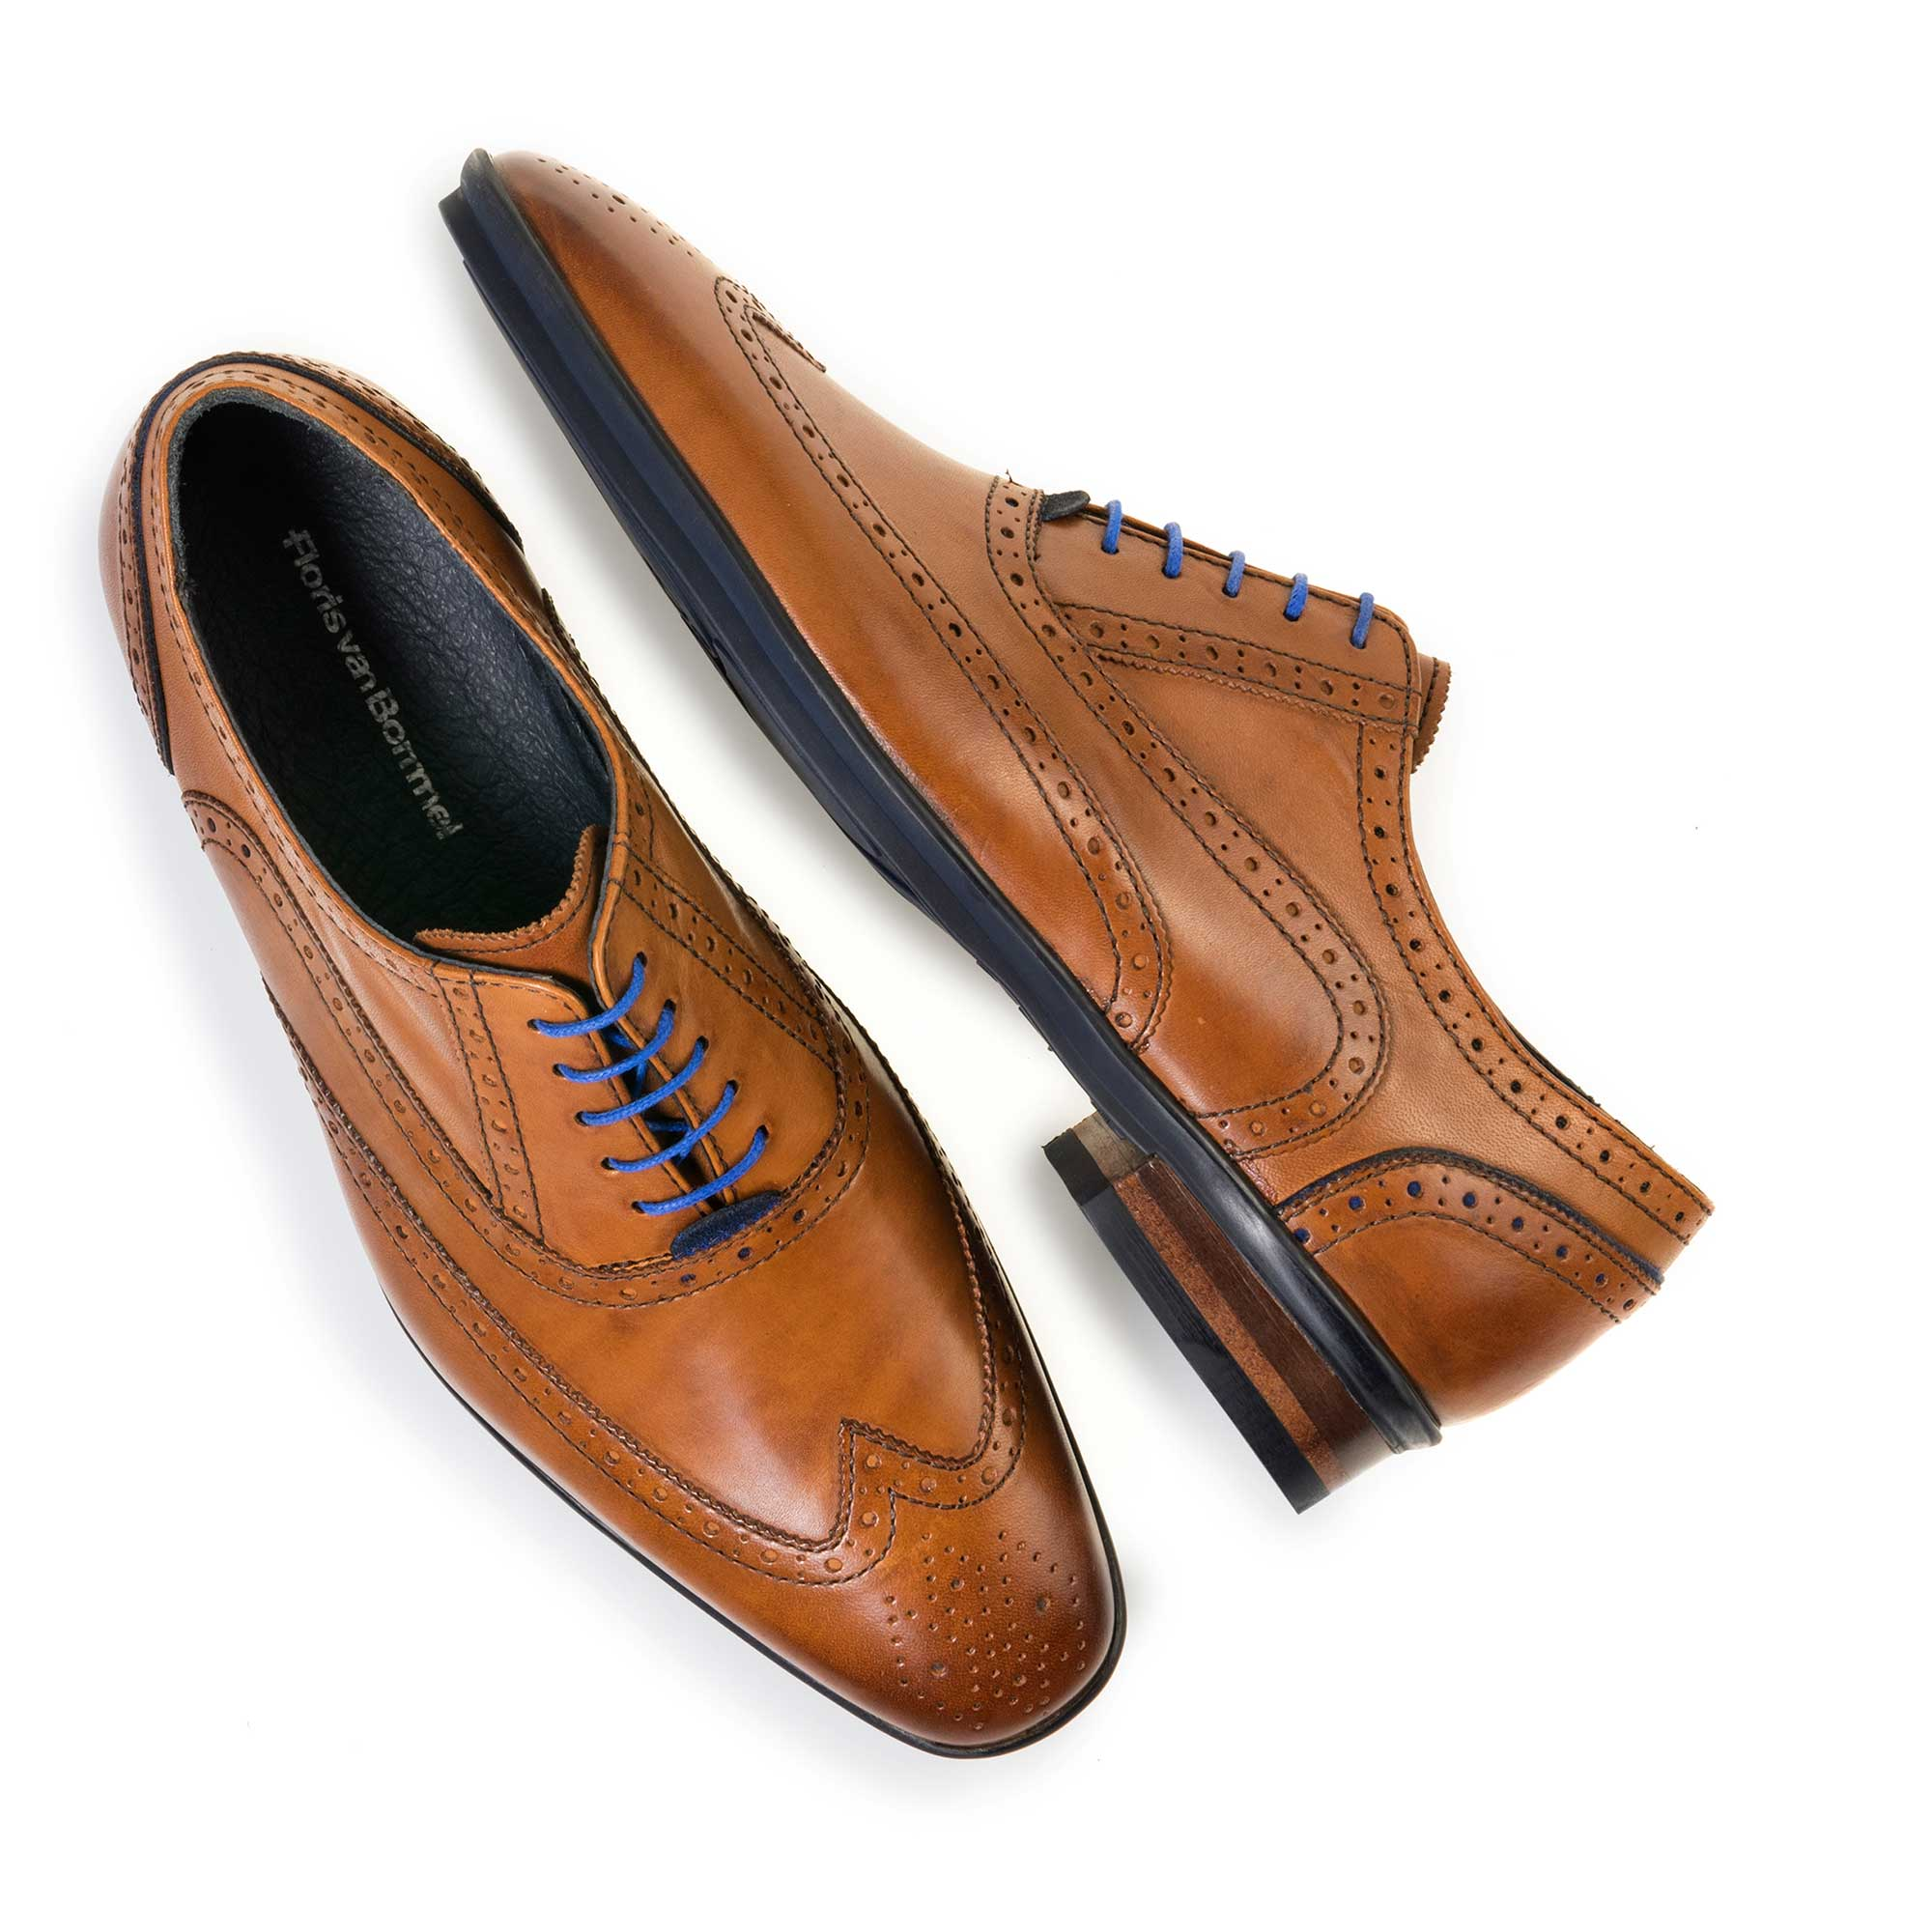 19025/02 - Cognac-coloured brogue leather lace shoe